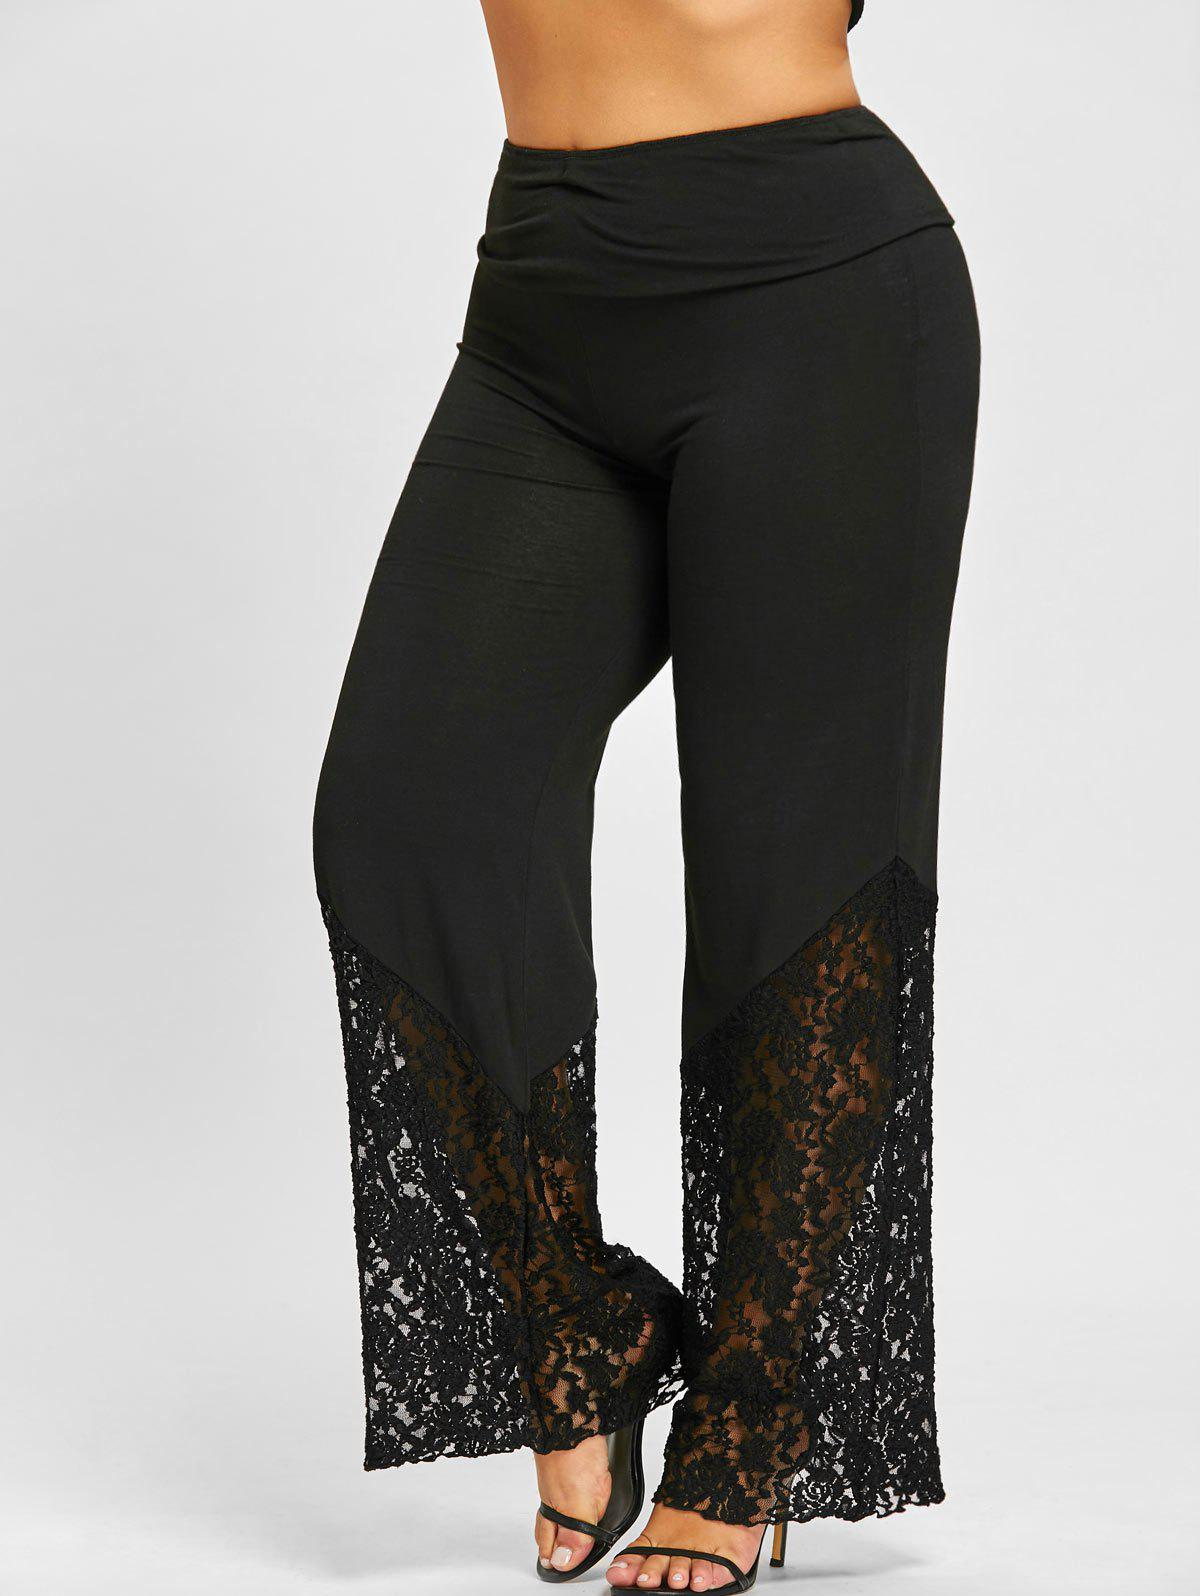 Plus Size Lace Hem Palazzo PantsWOMEN<br><br>Size: 2XL; Color: BLACK; Style: Fashion; Length: Overlength; Material: Polyester,Spandex; Fit Type: Loose; Waist Type: High; Closure Type: Elastic Waist; Pattern Type: Floral; Embellishment: Lace; Pant Style: Wide Leg Pants; Weight: 0.3700kg; Package Contents: 1 x Pants;